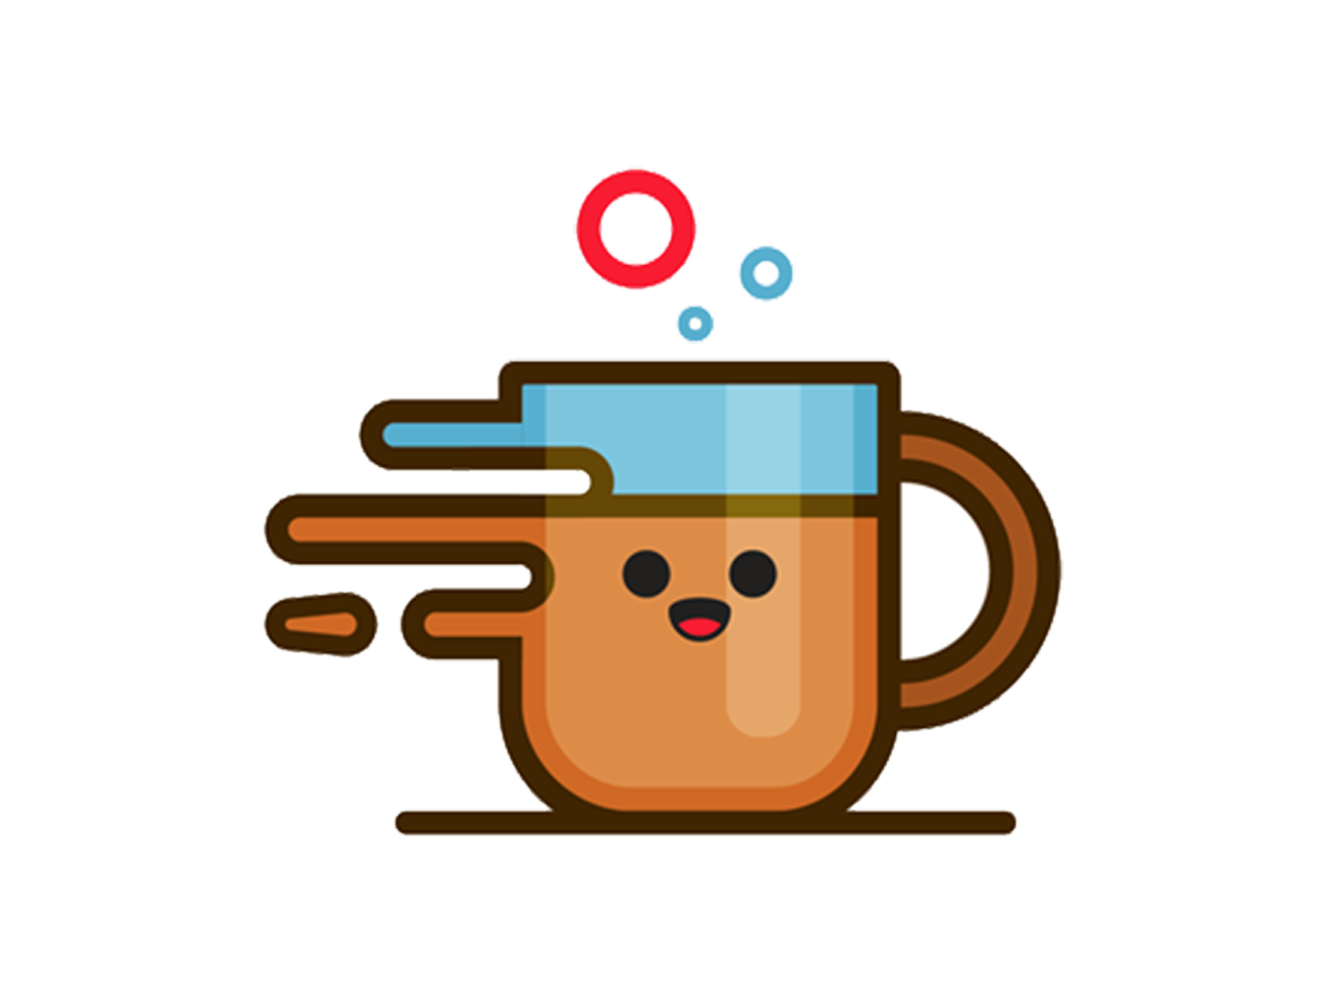 clip transparent stock Illustration material. Cute coffee cup clipart